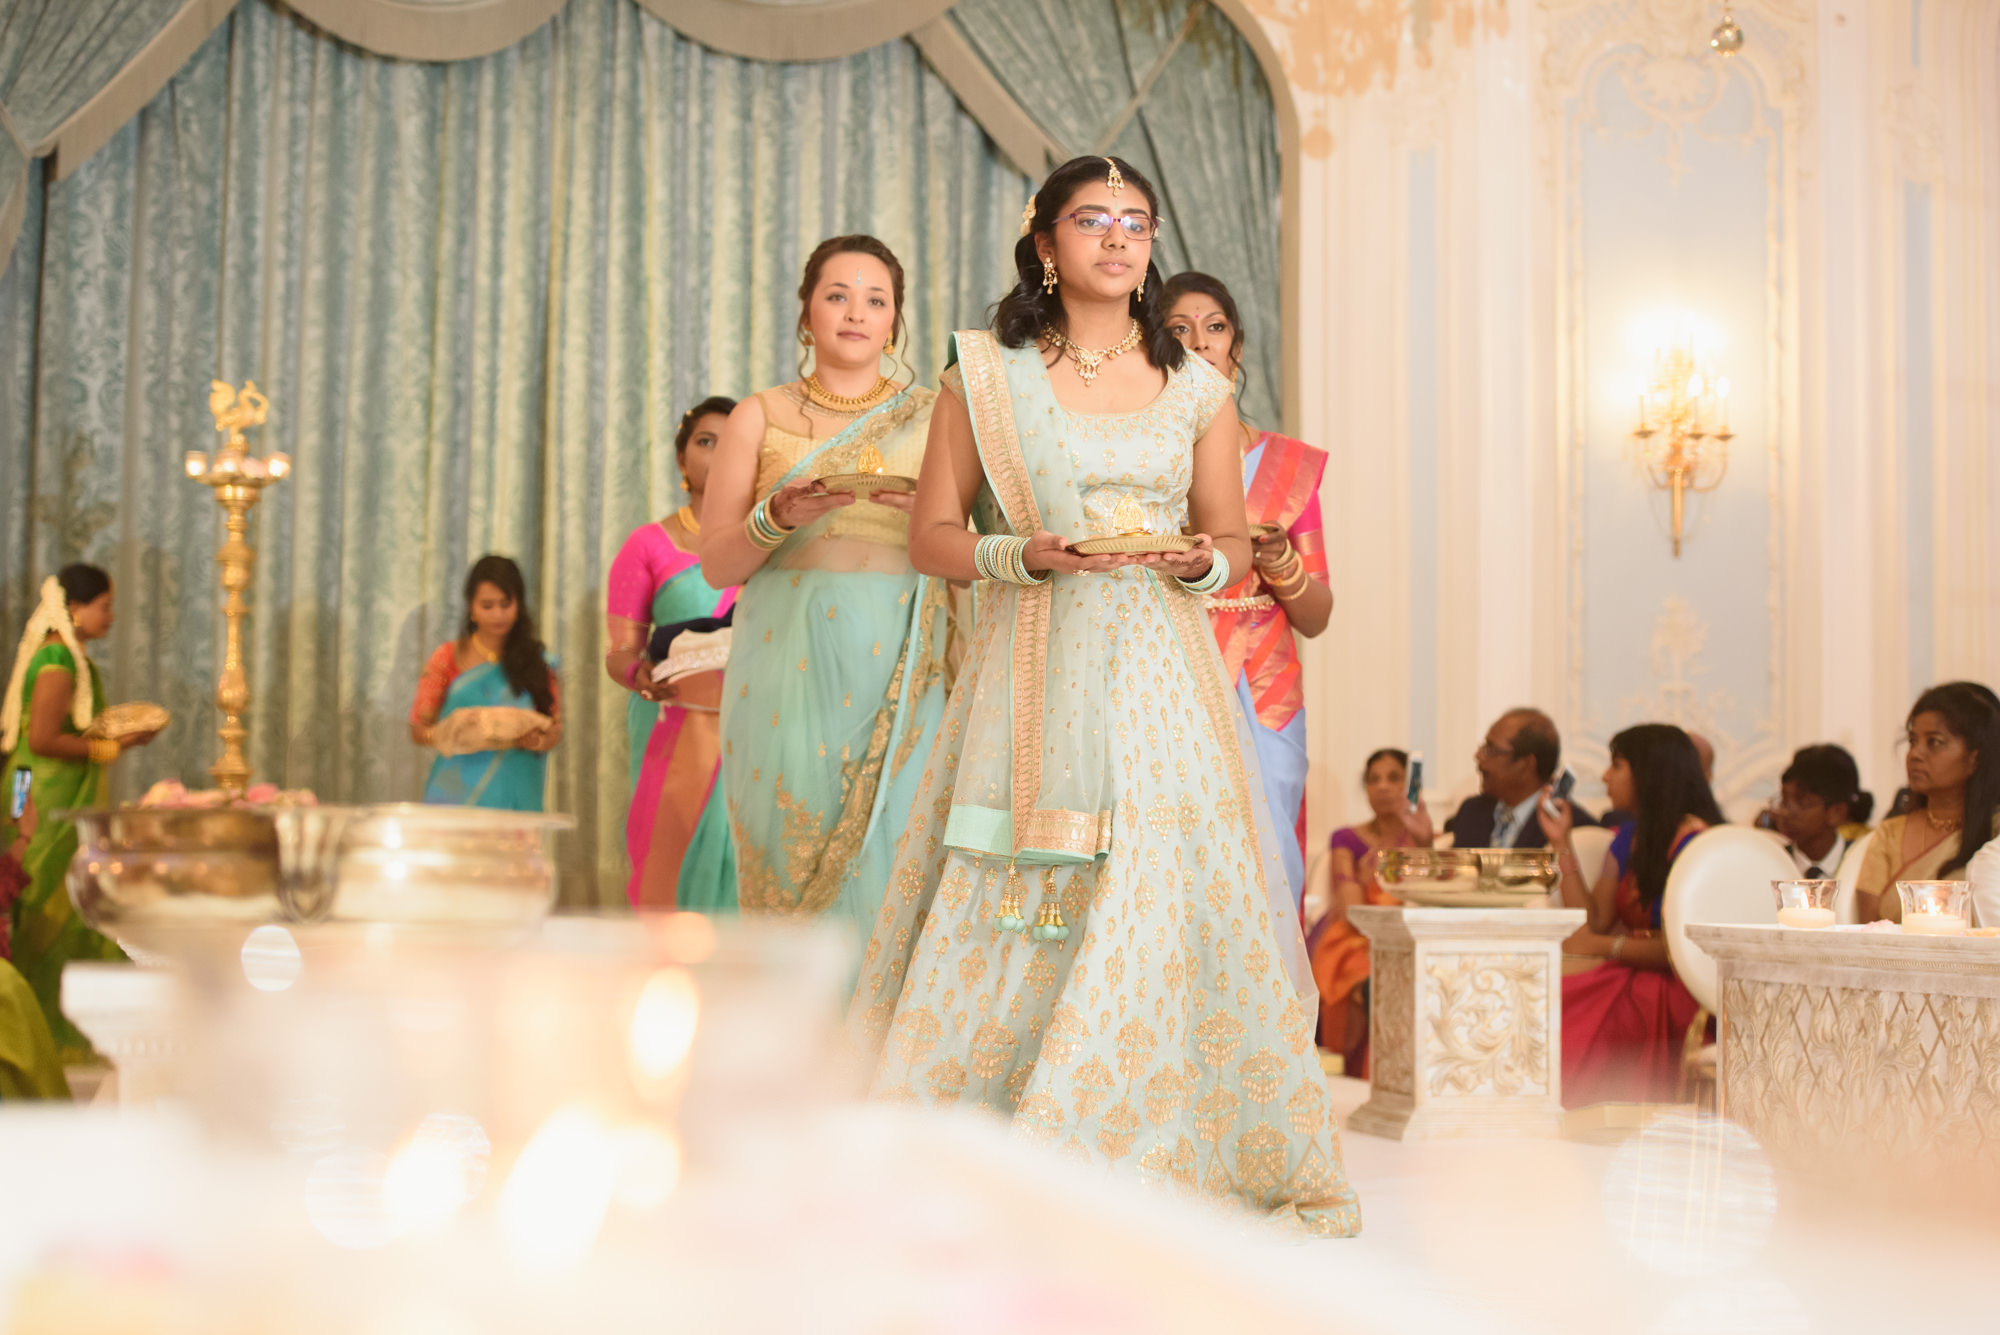 Tamil Gujrati hindu wedding photography photographer london the savoy -35.jpg